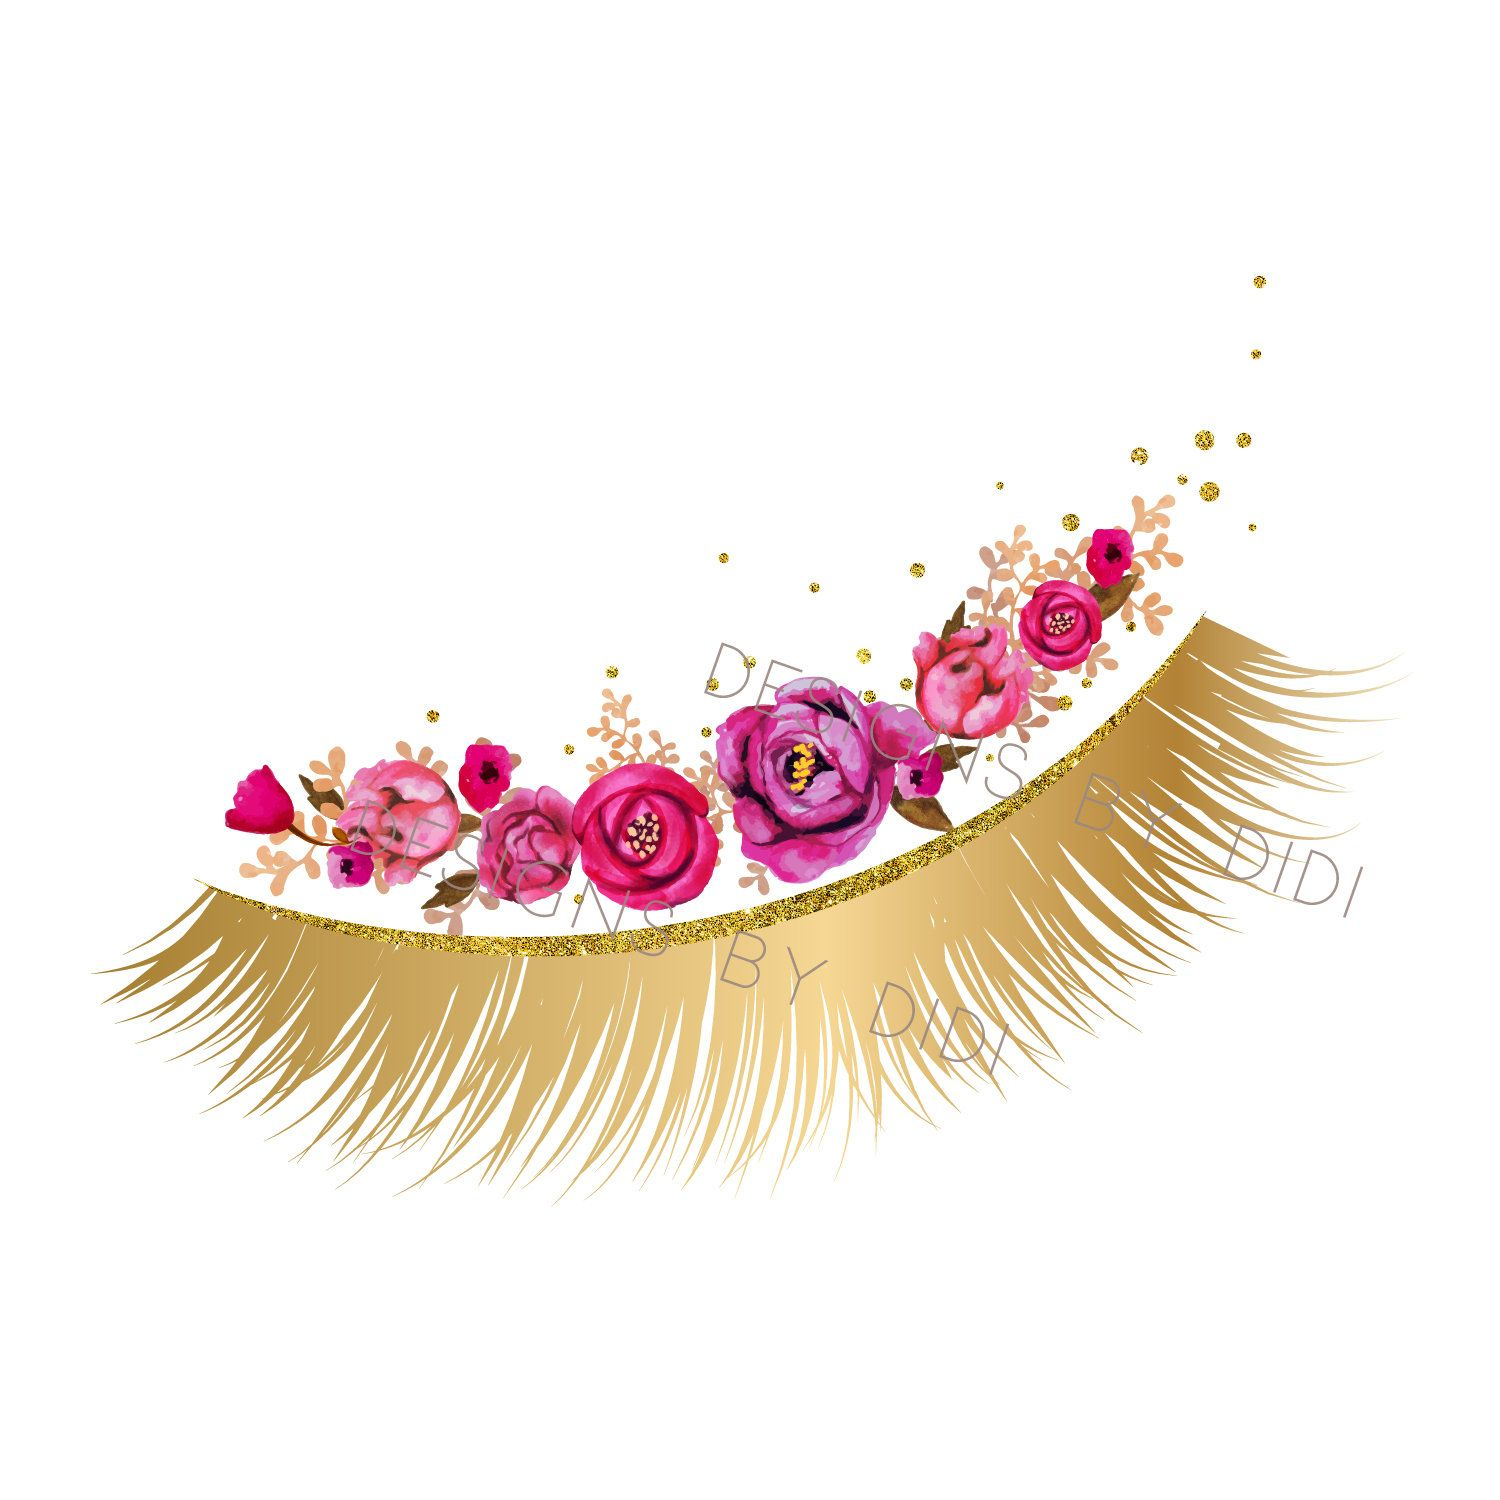 Eyelash logo clipart graphic royalty free download Instant Download, Lash Clipart, pink gold lashes clip art, instant ... graphic royalty free download